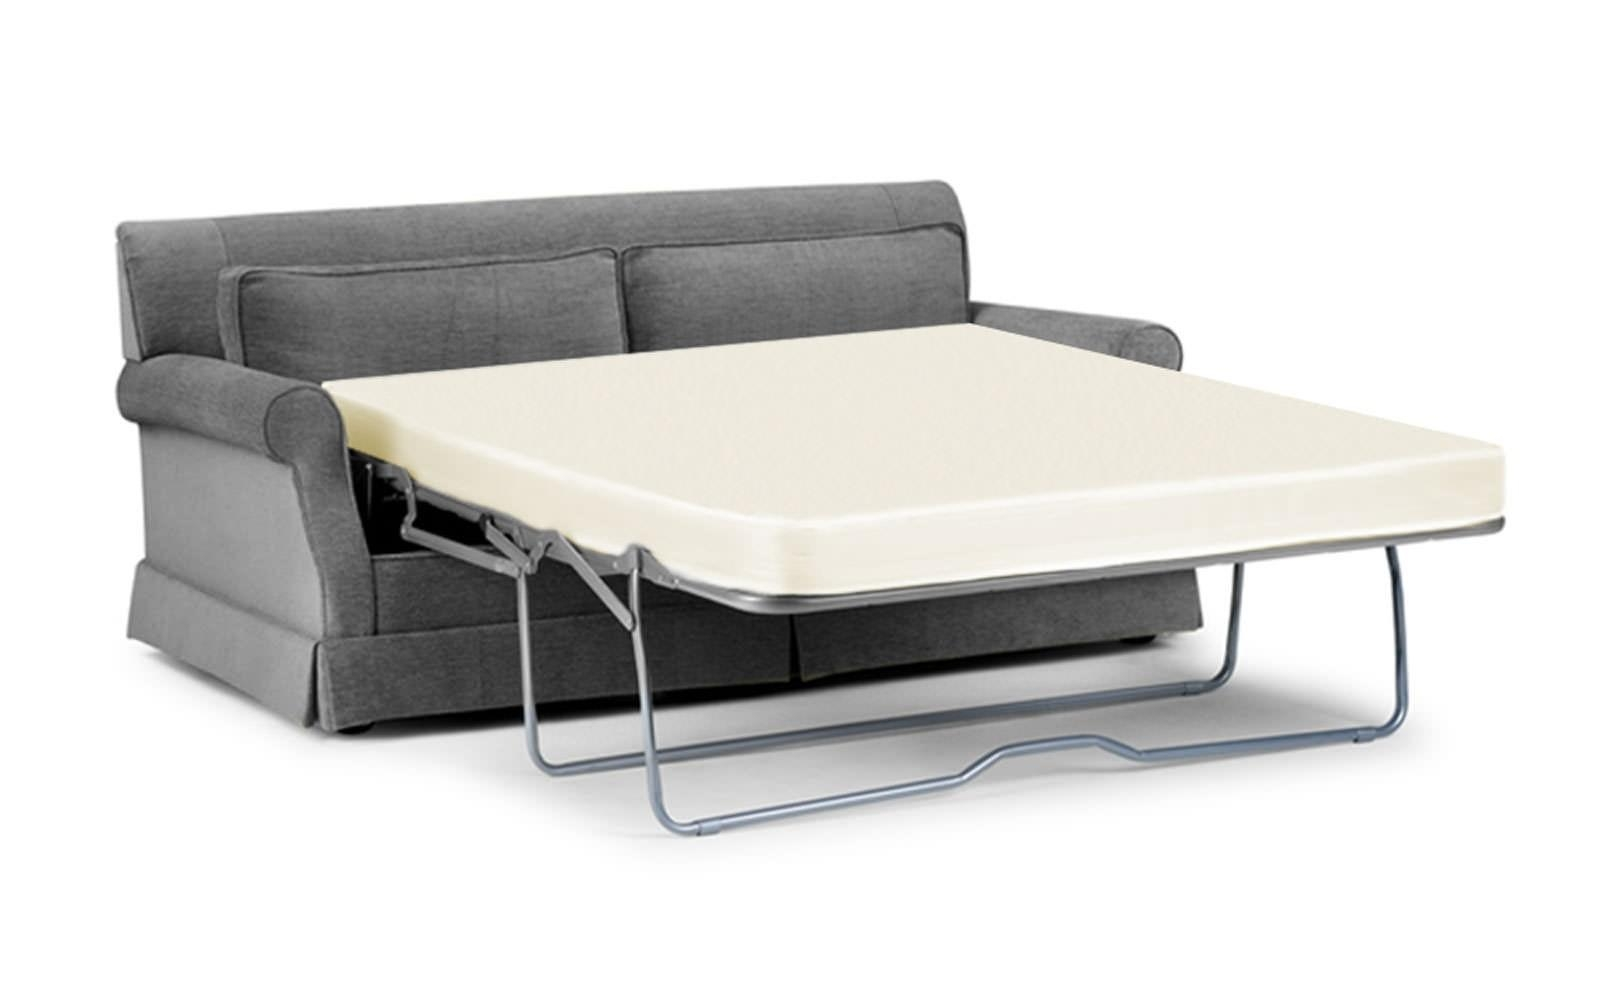 Sleeper Sofa Memory Foam Mattress & Replacement In Sofa Beds With Mattress Support (Image 14 of 20)